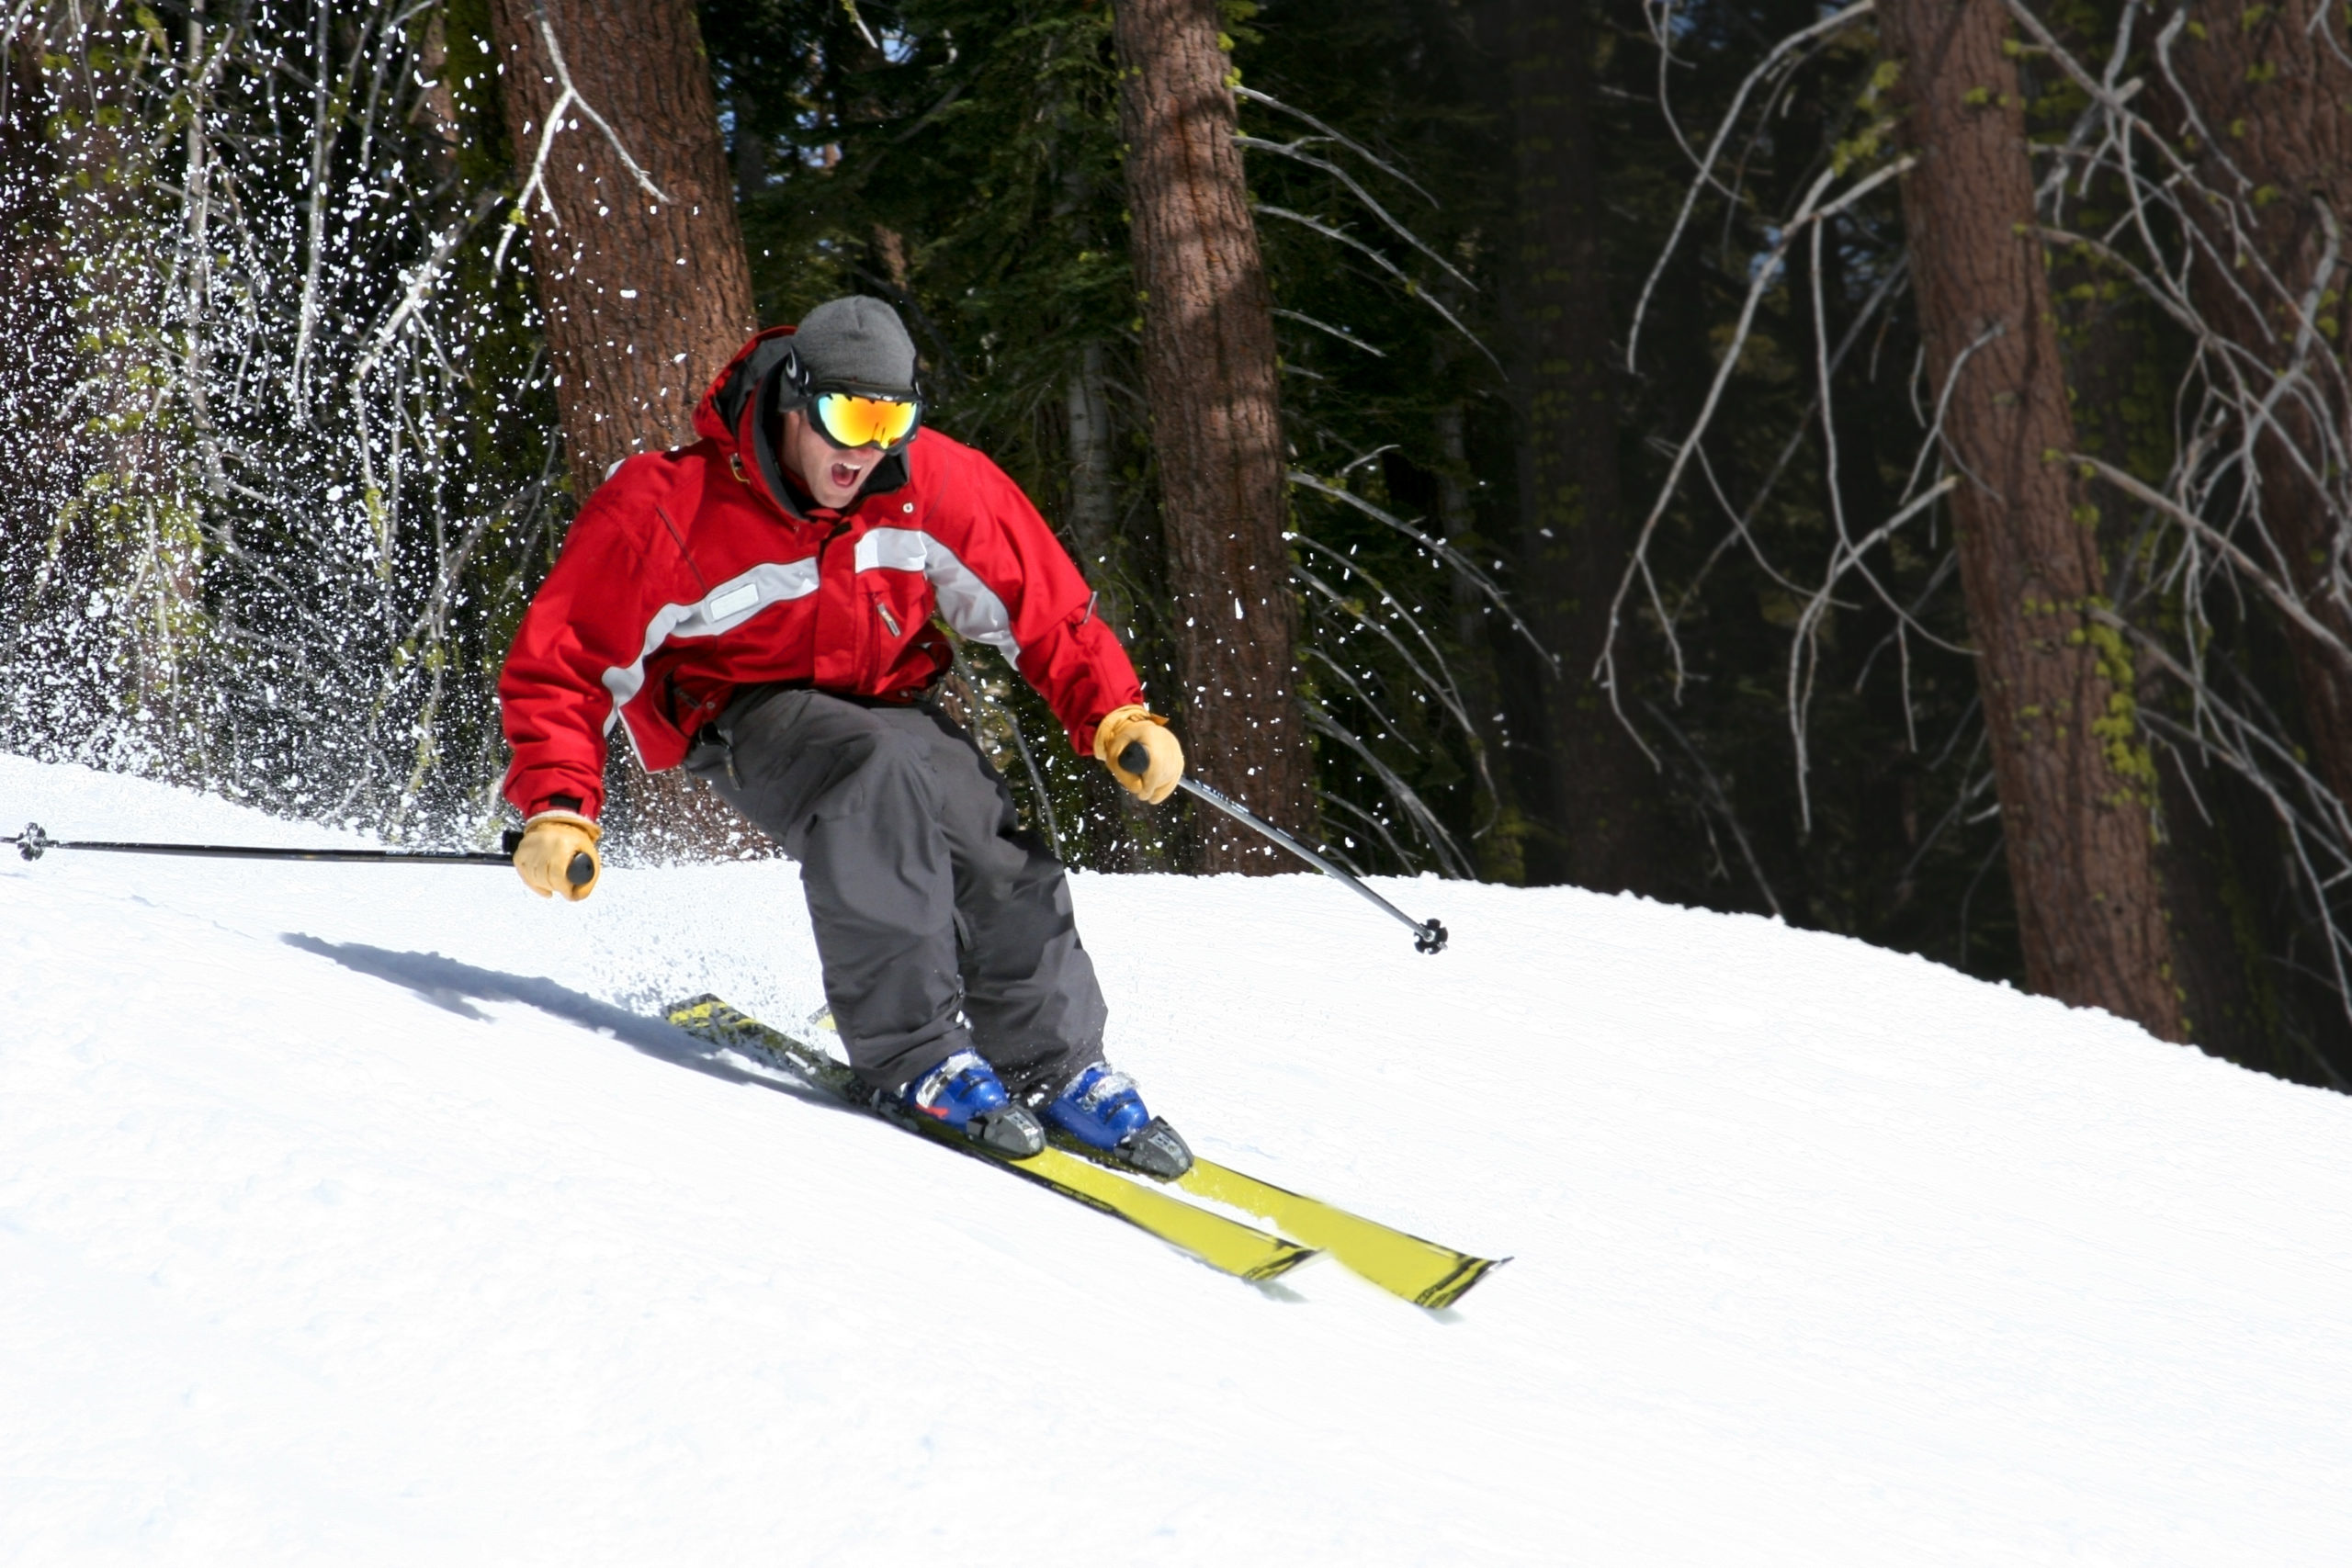 Man in red ski jacket skiing down hill with a backdrop of trees